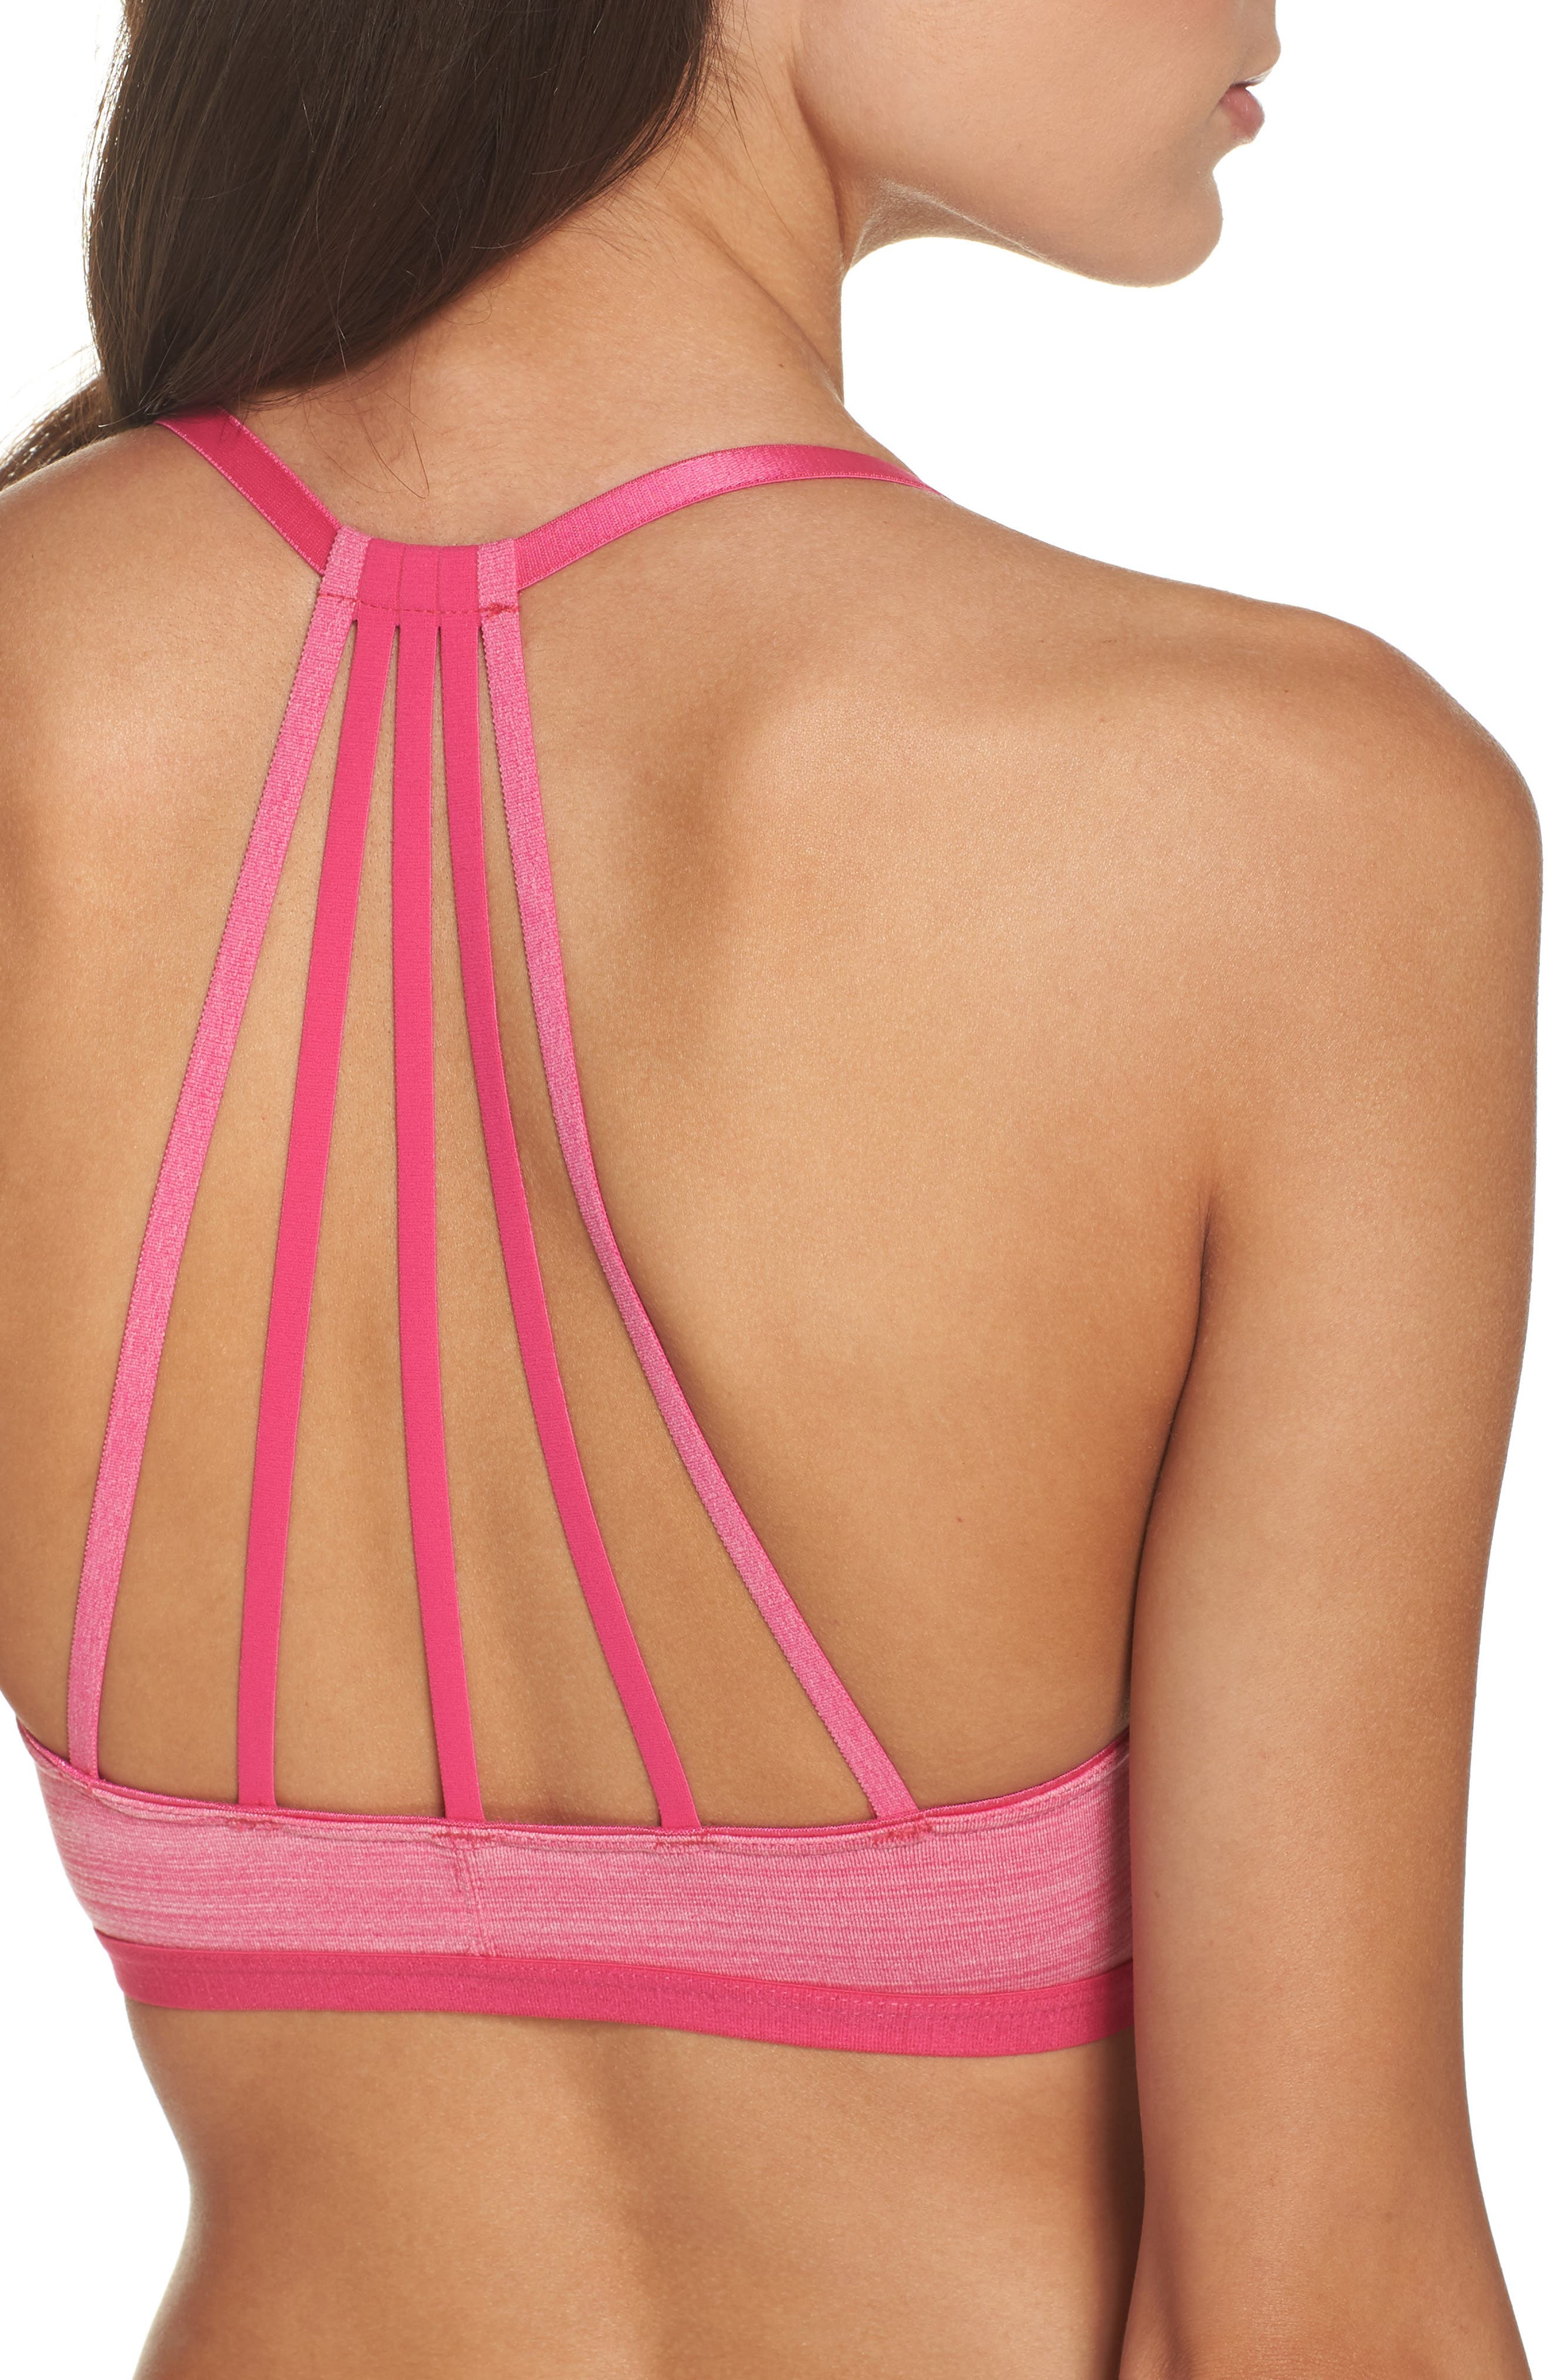 Strappy Bralette,                             Alternate thumbnail 6, color,                             Pink Peacock